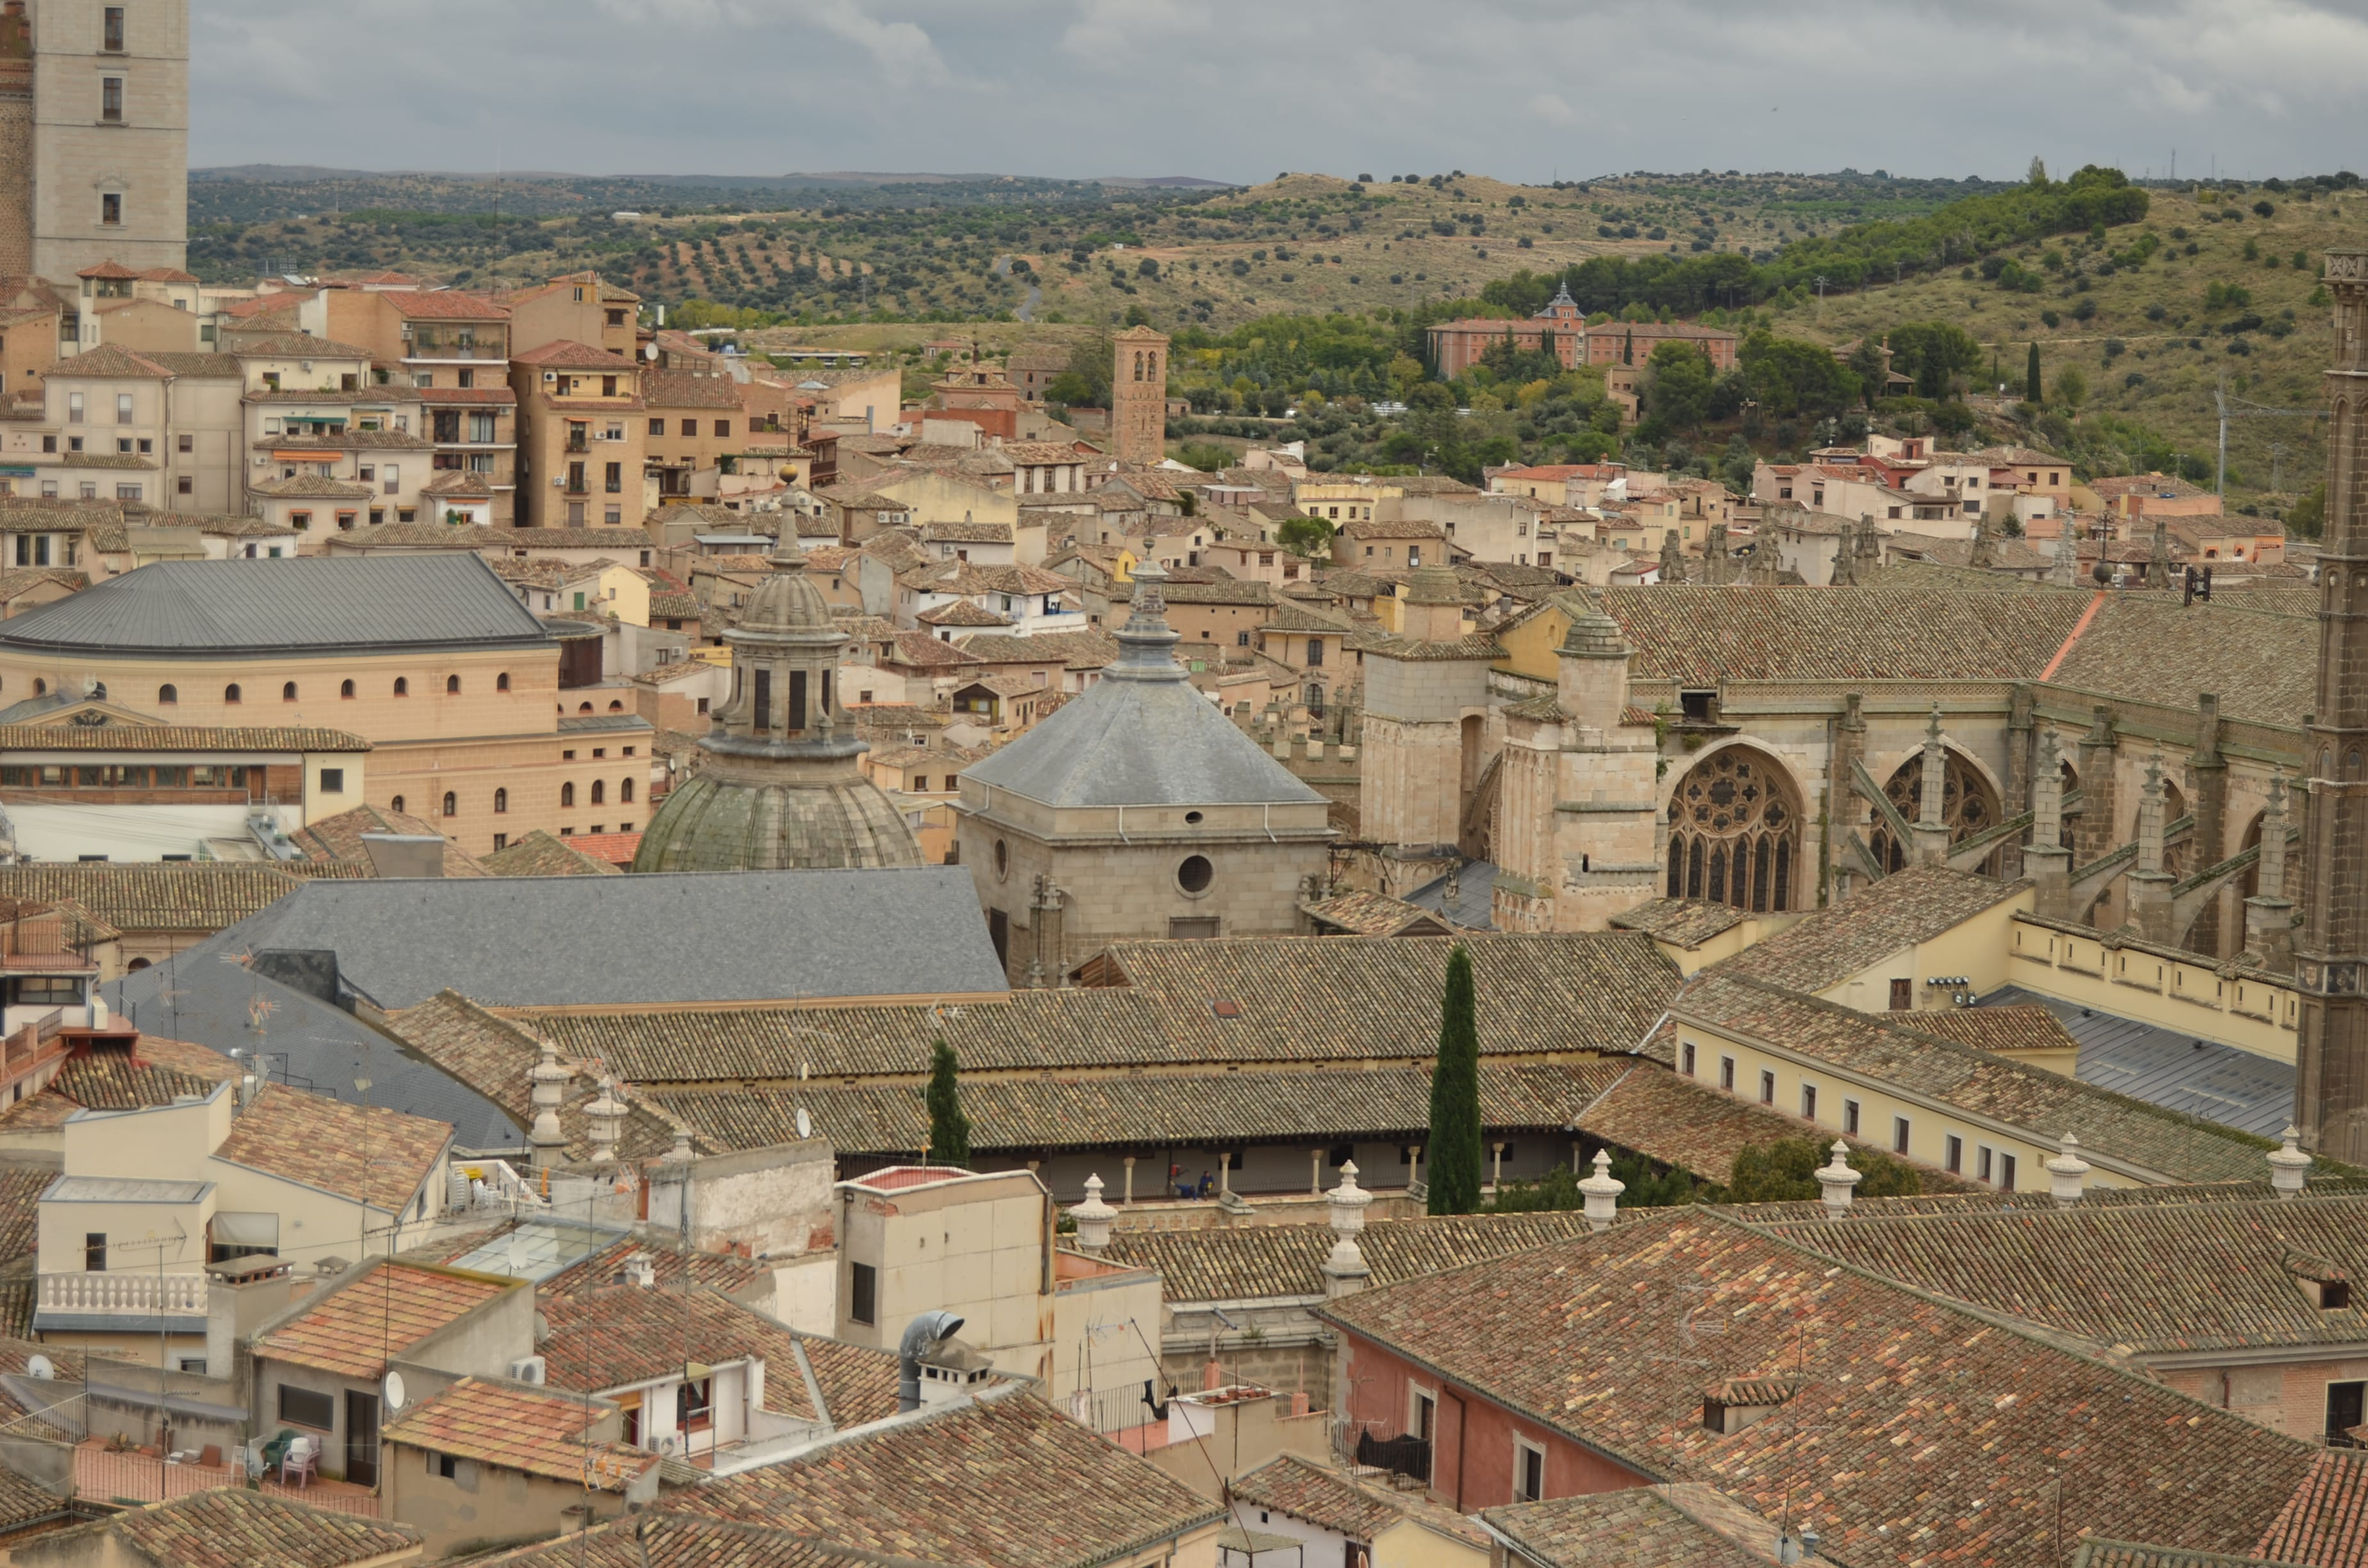 Strolling through Toledo is an awesome thing to do in Spain